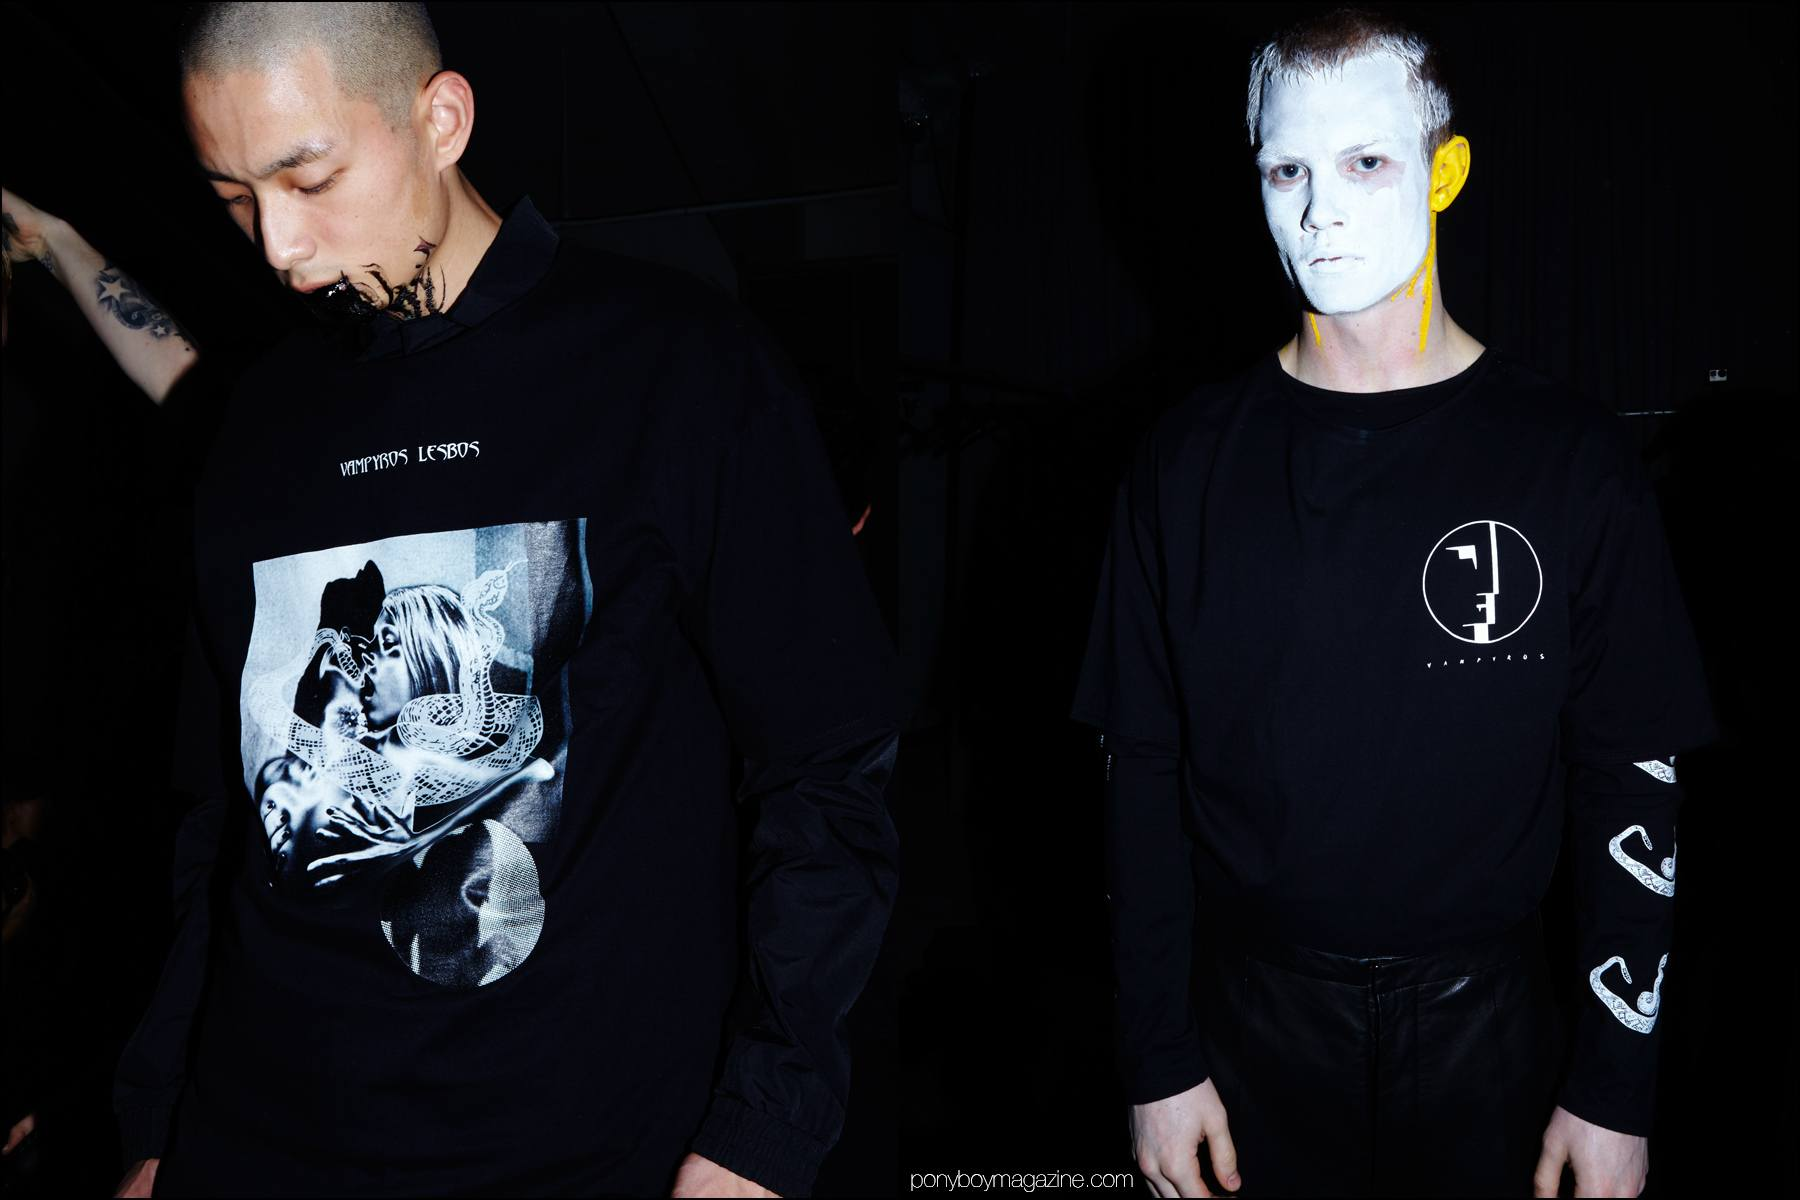 Male models in gothic t-shirts photographed backstage at the Siki Im + Den Im F/W16 menswear show. Photography by Alexander Thompson for Ponyboy magazine NY.